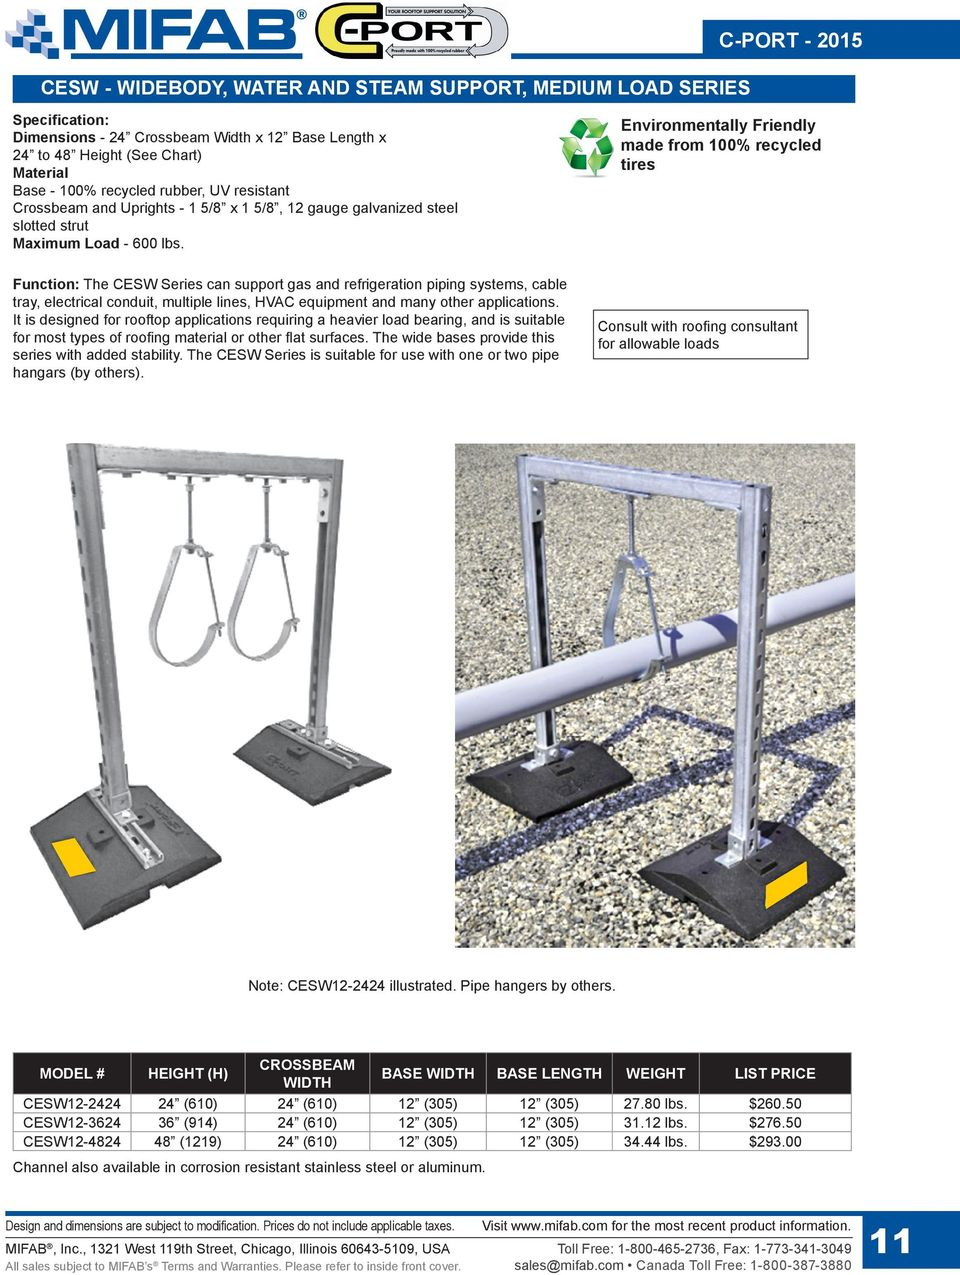 C Port Rubber Supports List Price Guide Lit Pdf 2014 Gmc Sierra Wiring Diagram Underfloor Board Function The Cesw Series Can Support Gas And Refrigeration Piping Systems Cable Tray